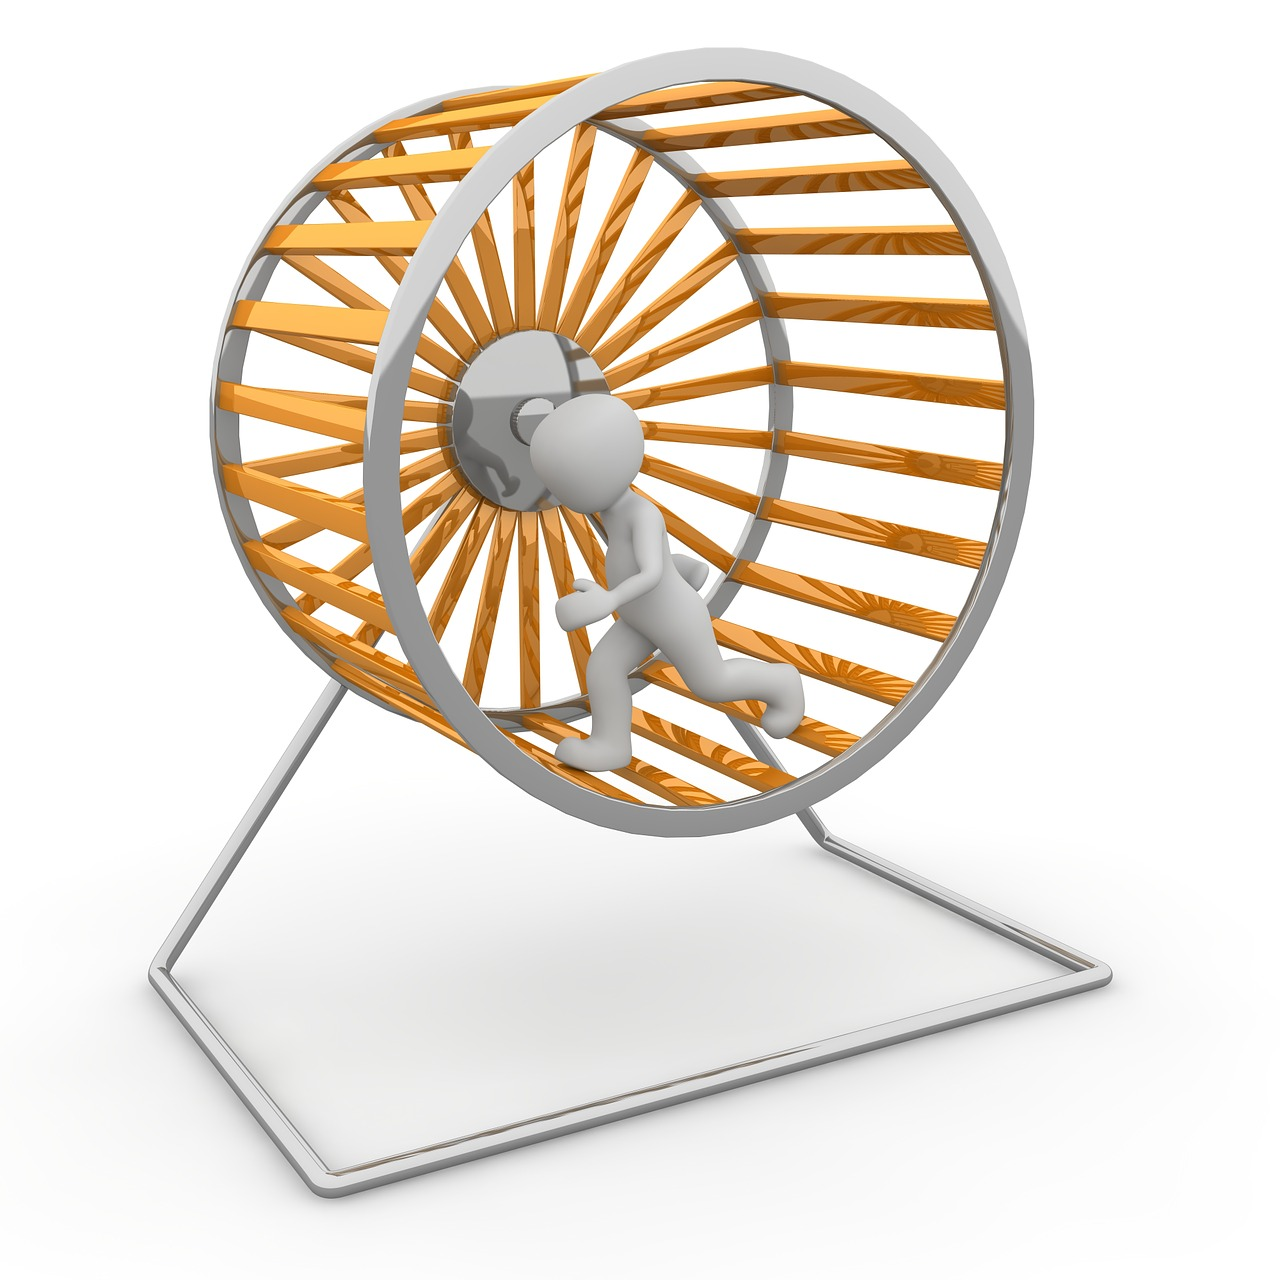 To illustrate life on hamster wheel